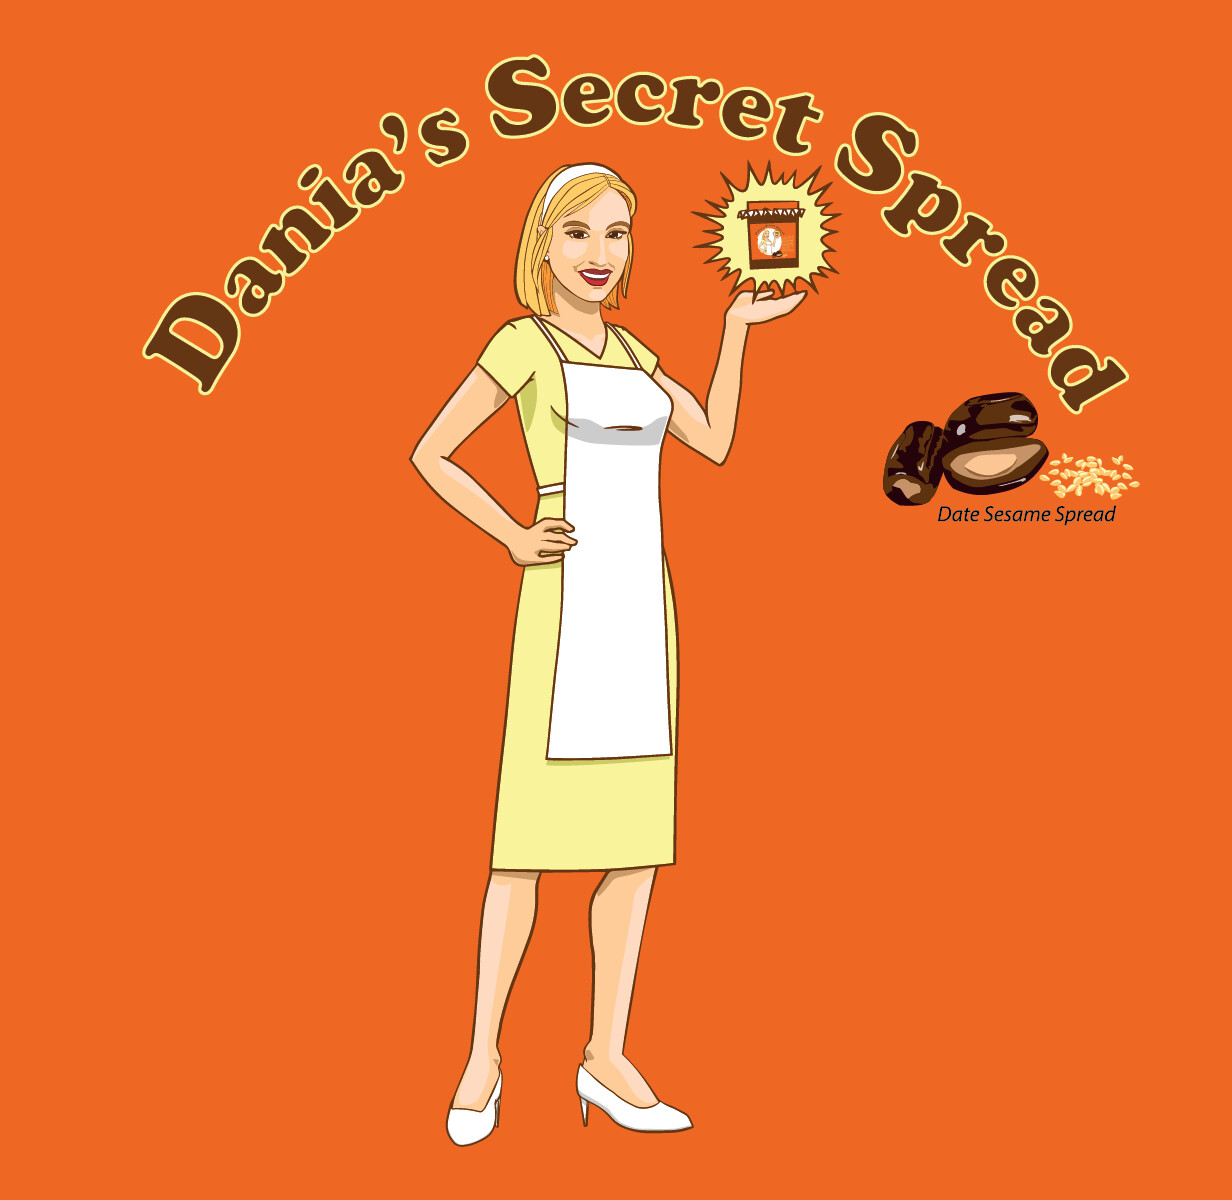 Michael davis dania s secret sprex full